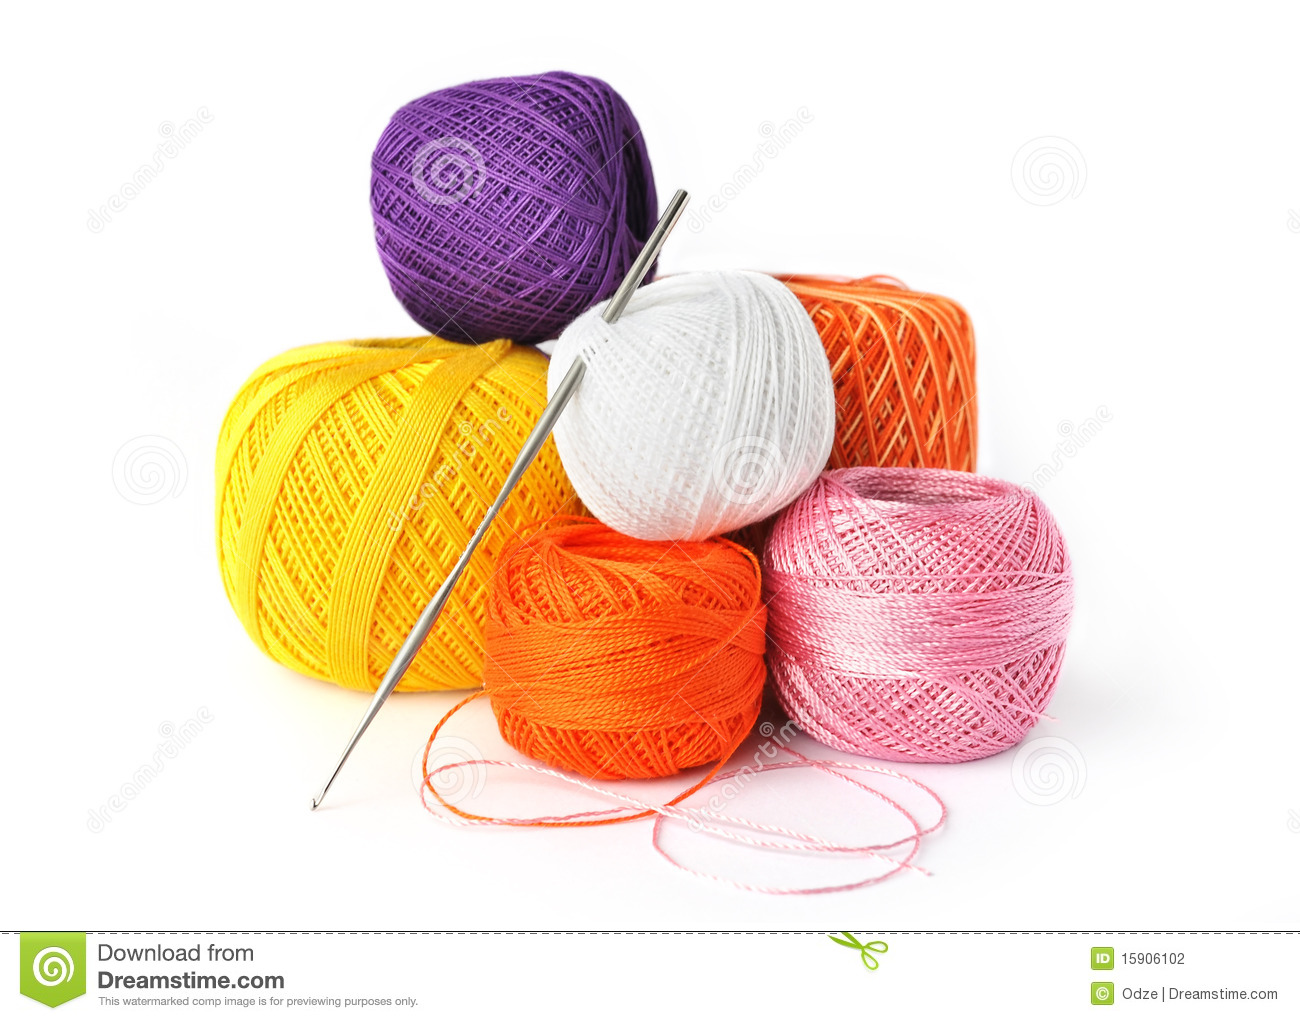 Crocheting Tools : Crochet Tools Stock Photography - Image: 15906102